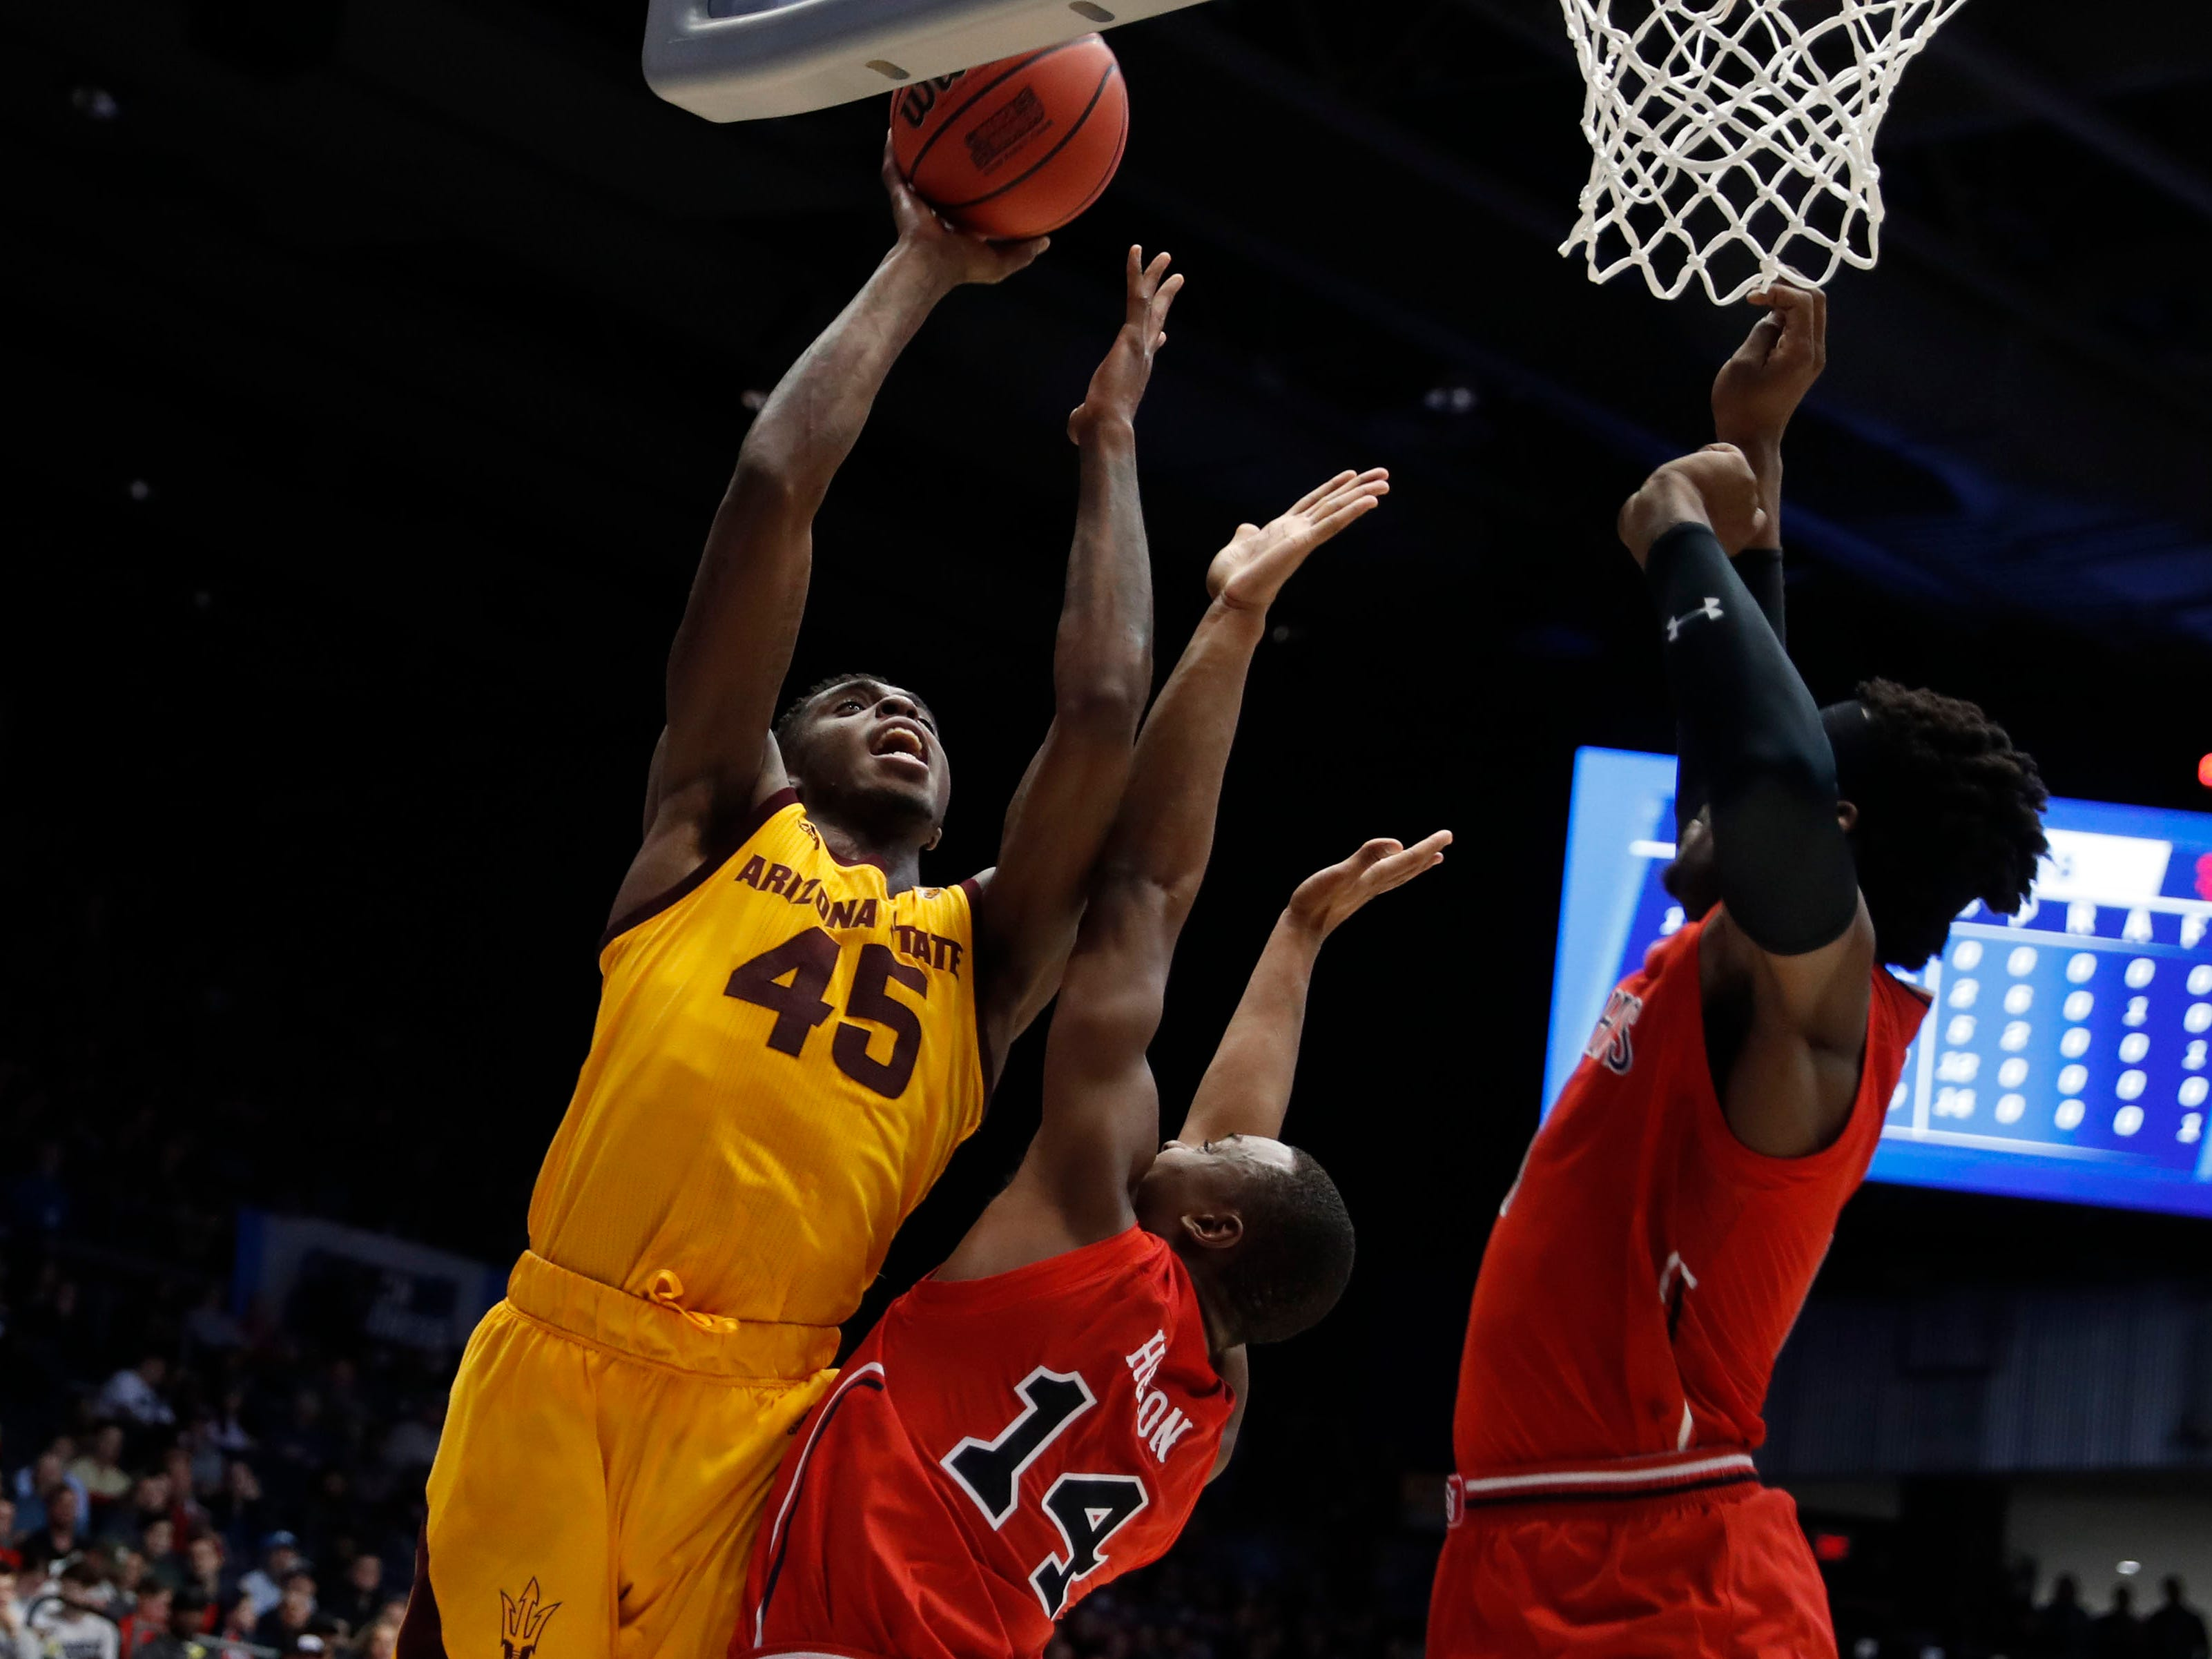 Mar 20, 2019; Dayton, OH, USA; Arizona State Sun Devils forward Zylan Cheatham (45) goes to the basket defended by St. John's Red Storm guard Mustapha Heron (14) in the first half in the First Four of the 2019 NCAA Tournament at Dayton Arena. Mandatory Credit: Brian Spurlock -USA TODAY Sports